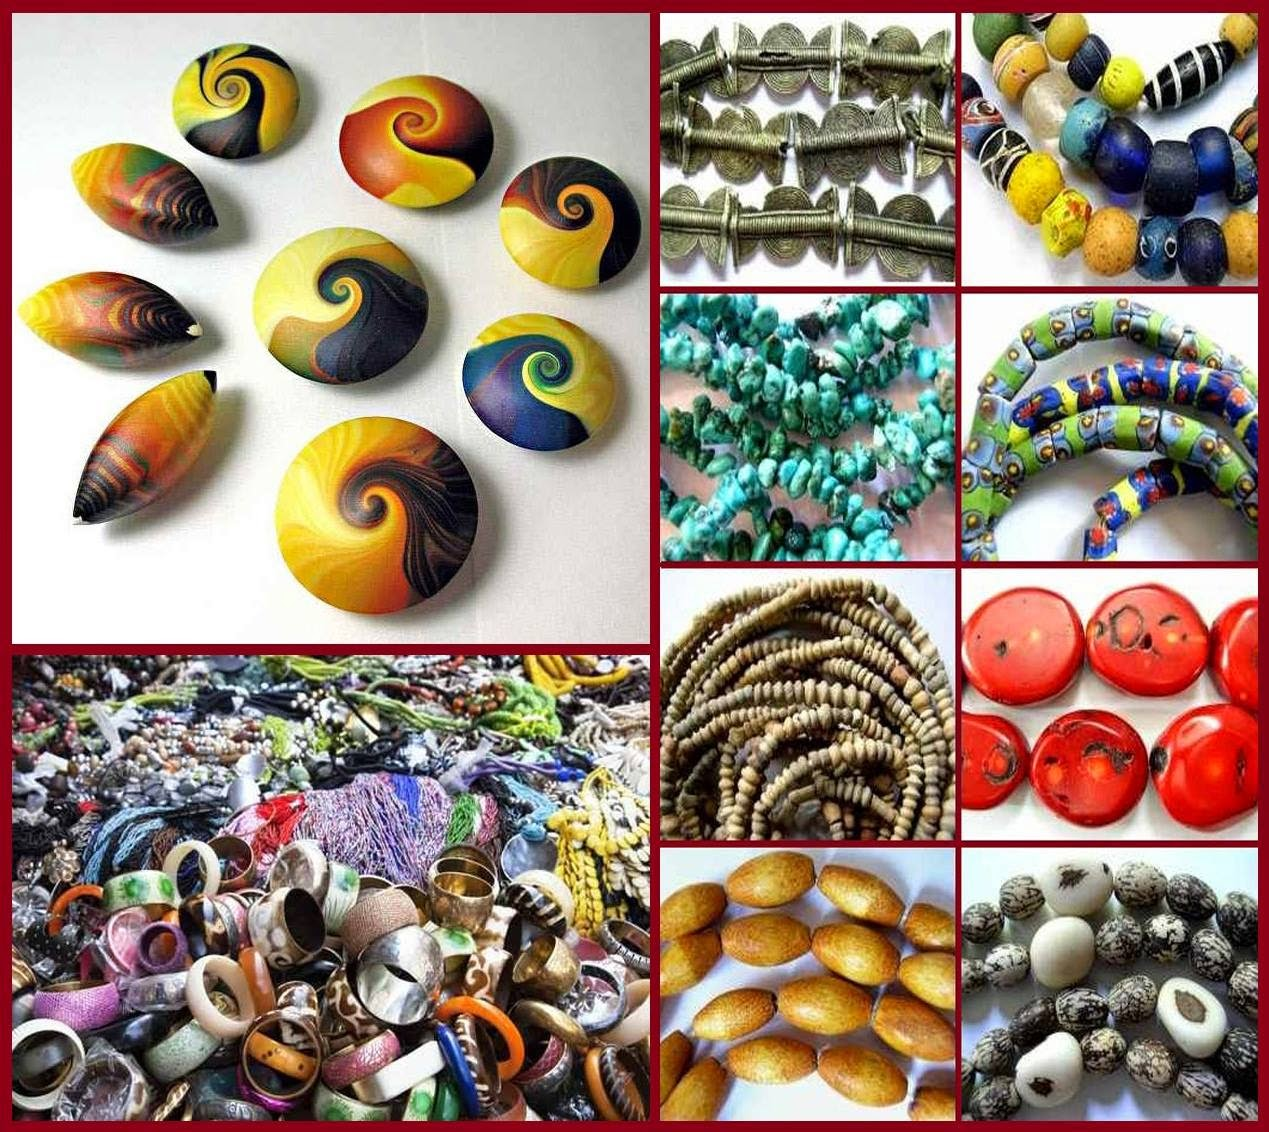 Selling Beads | Business Ideas